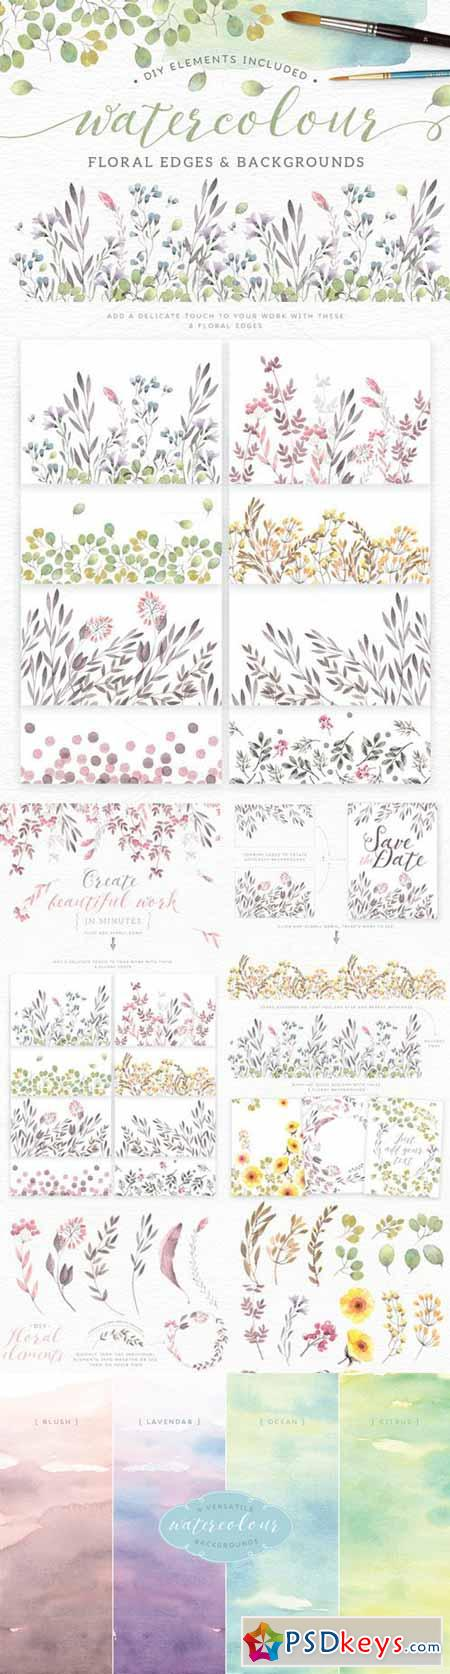 Watercolor floral edges+backgrounds 244367